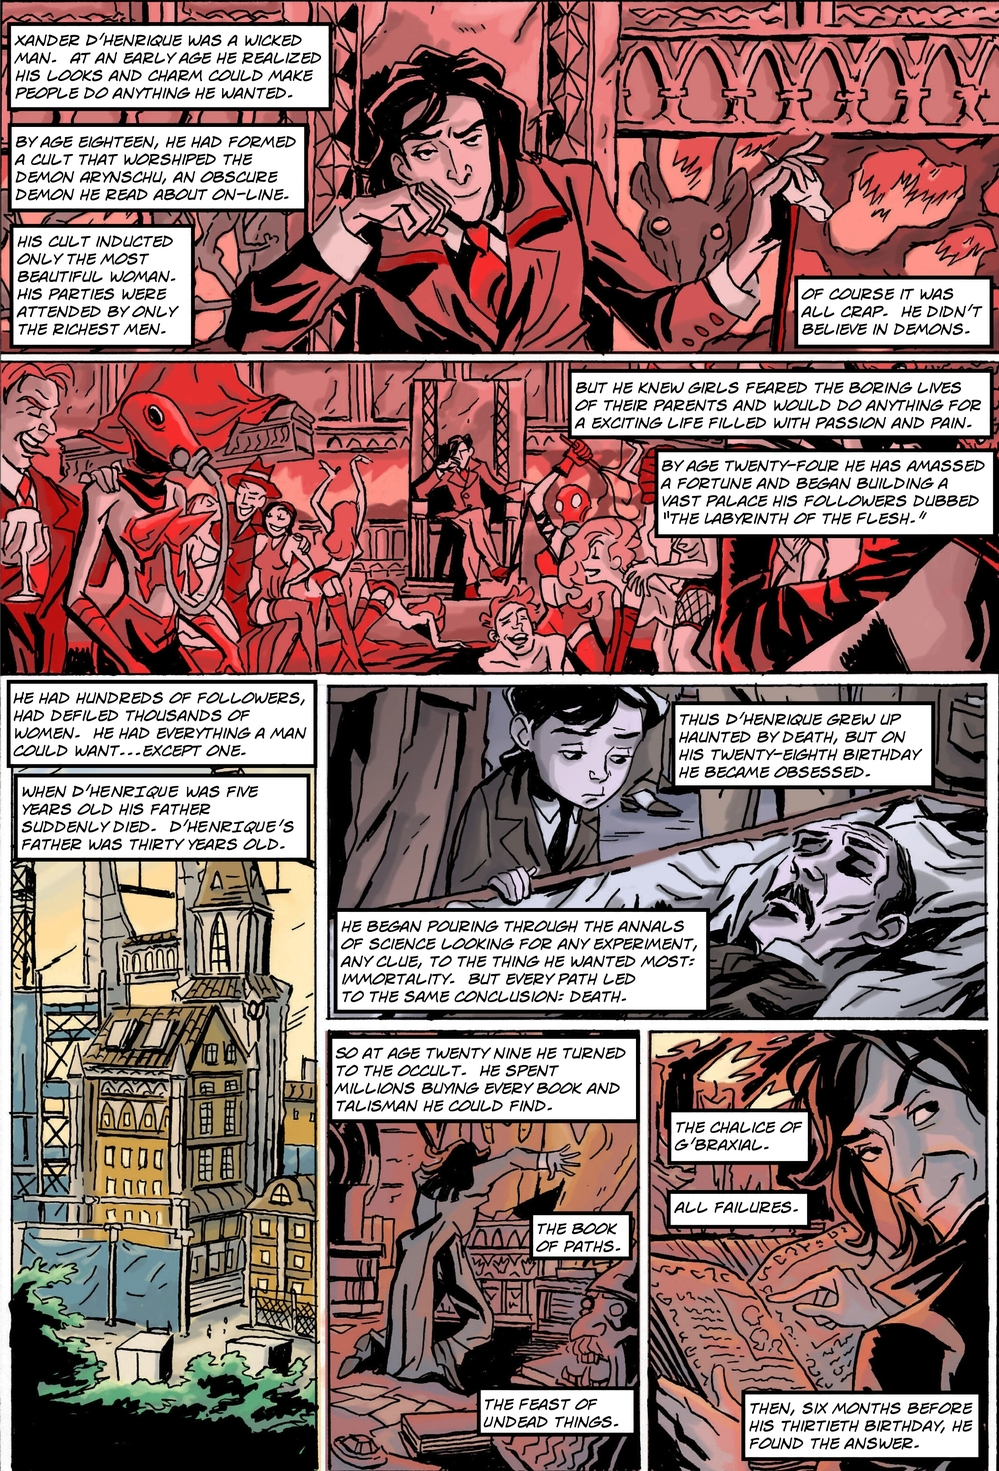 MOST EVIL PAINTING IN THE WORLD page 1 - story 17 in The Book of Lies